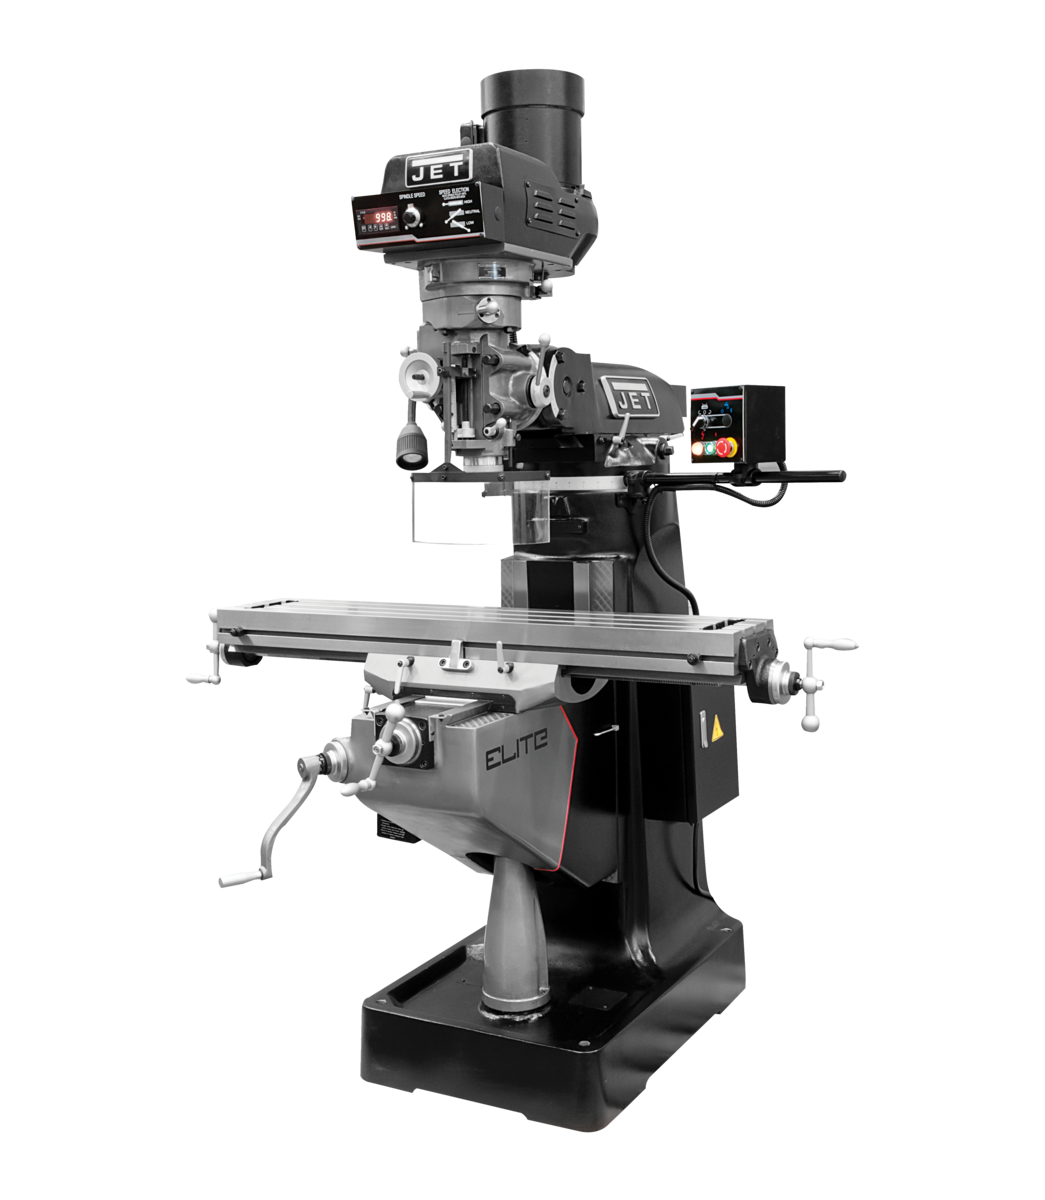 EVS-949 Mill with 2-Axis ACU-RITE 203 DRO and X, Y-Axis JET Powerfeeds